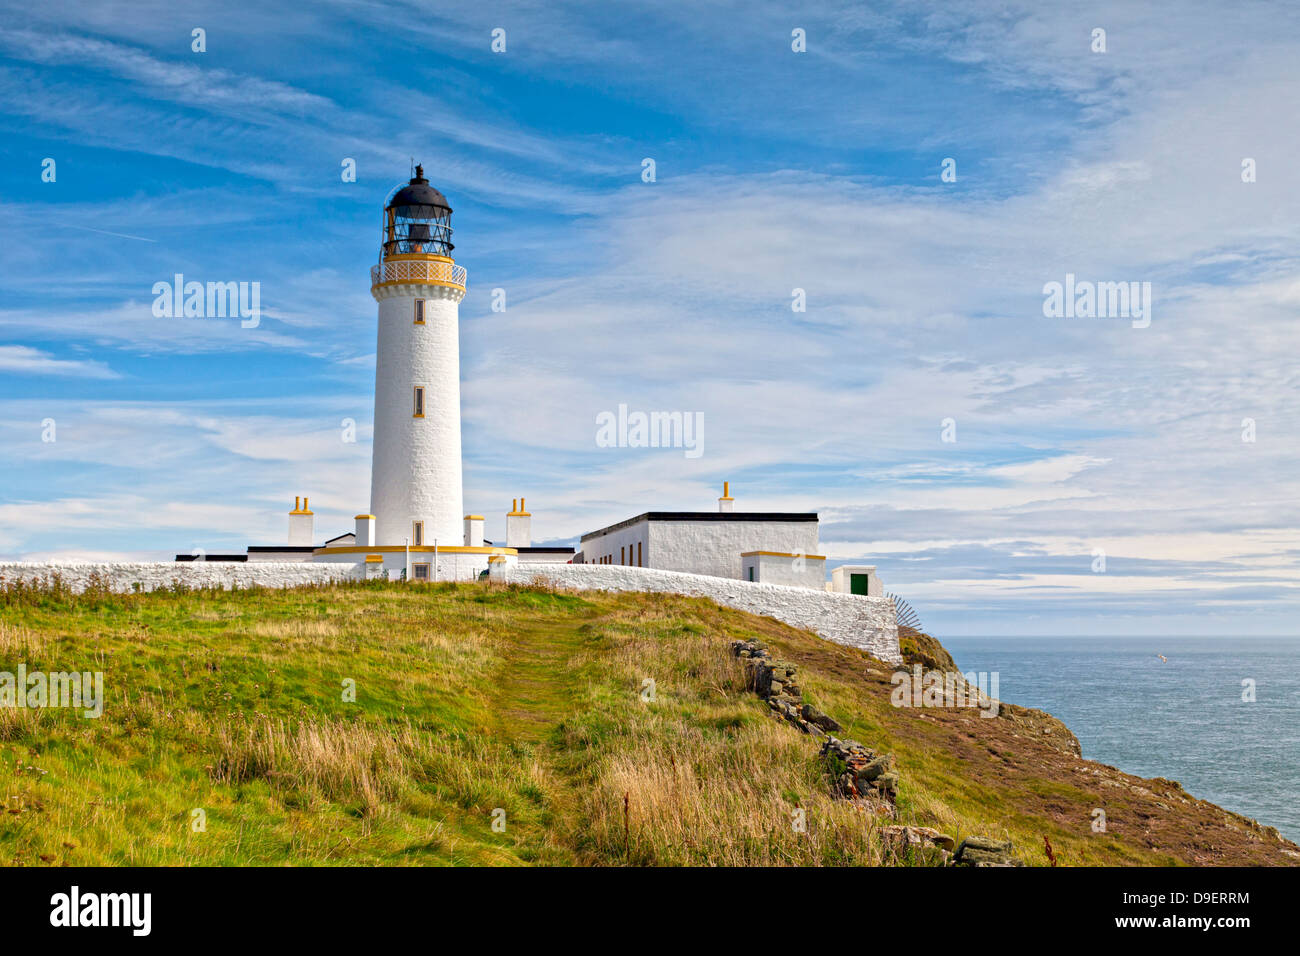 The lighthouse at the Mull of Galloway, the most southerly point of Scotland. - Stock Image